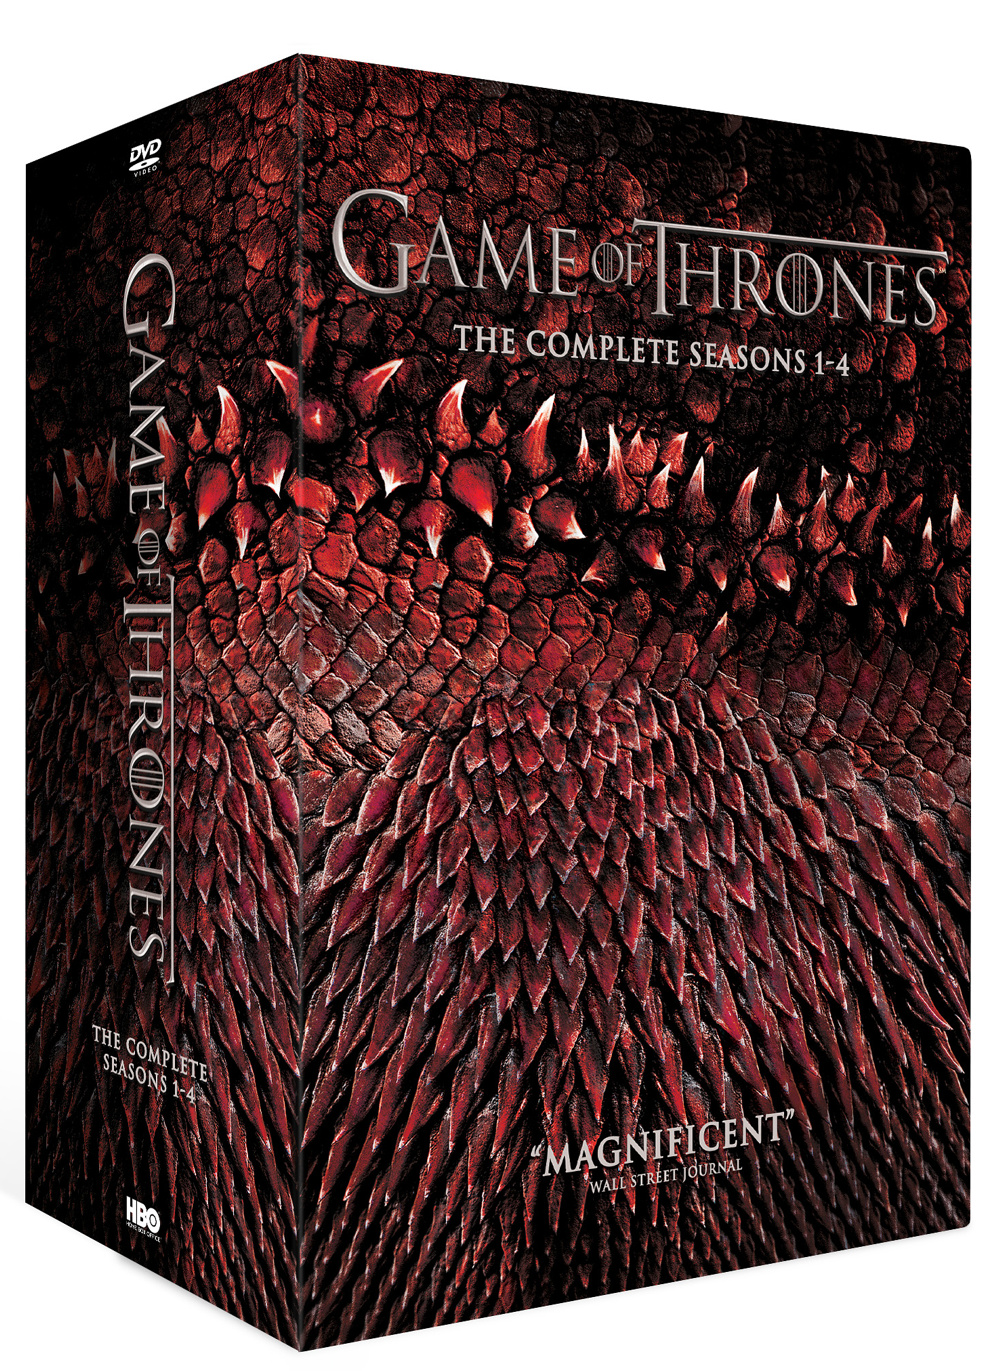 Игра престолов. Сезоны 1–4  (20 DVD) Game of Thrones Season 1 / Game of Thrones Season 2 / Game of Thrones Season 3/ Game of Thrones Season 4